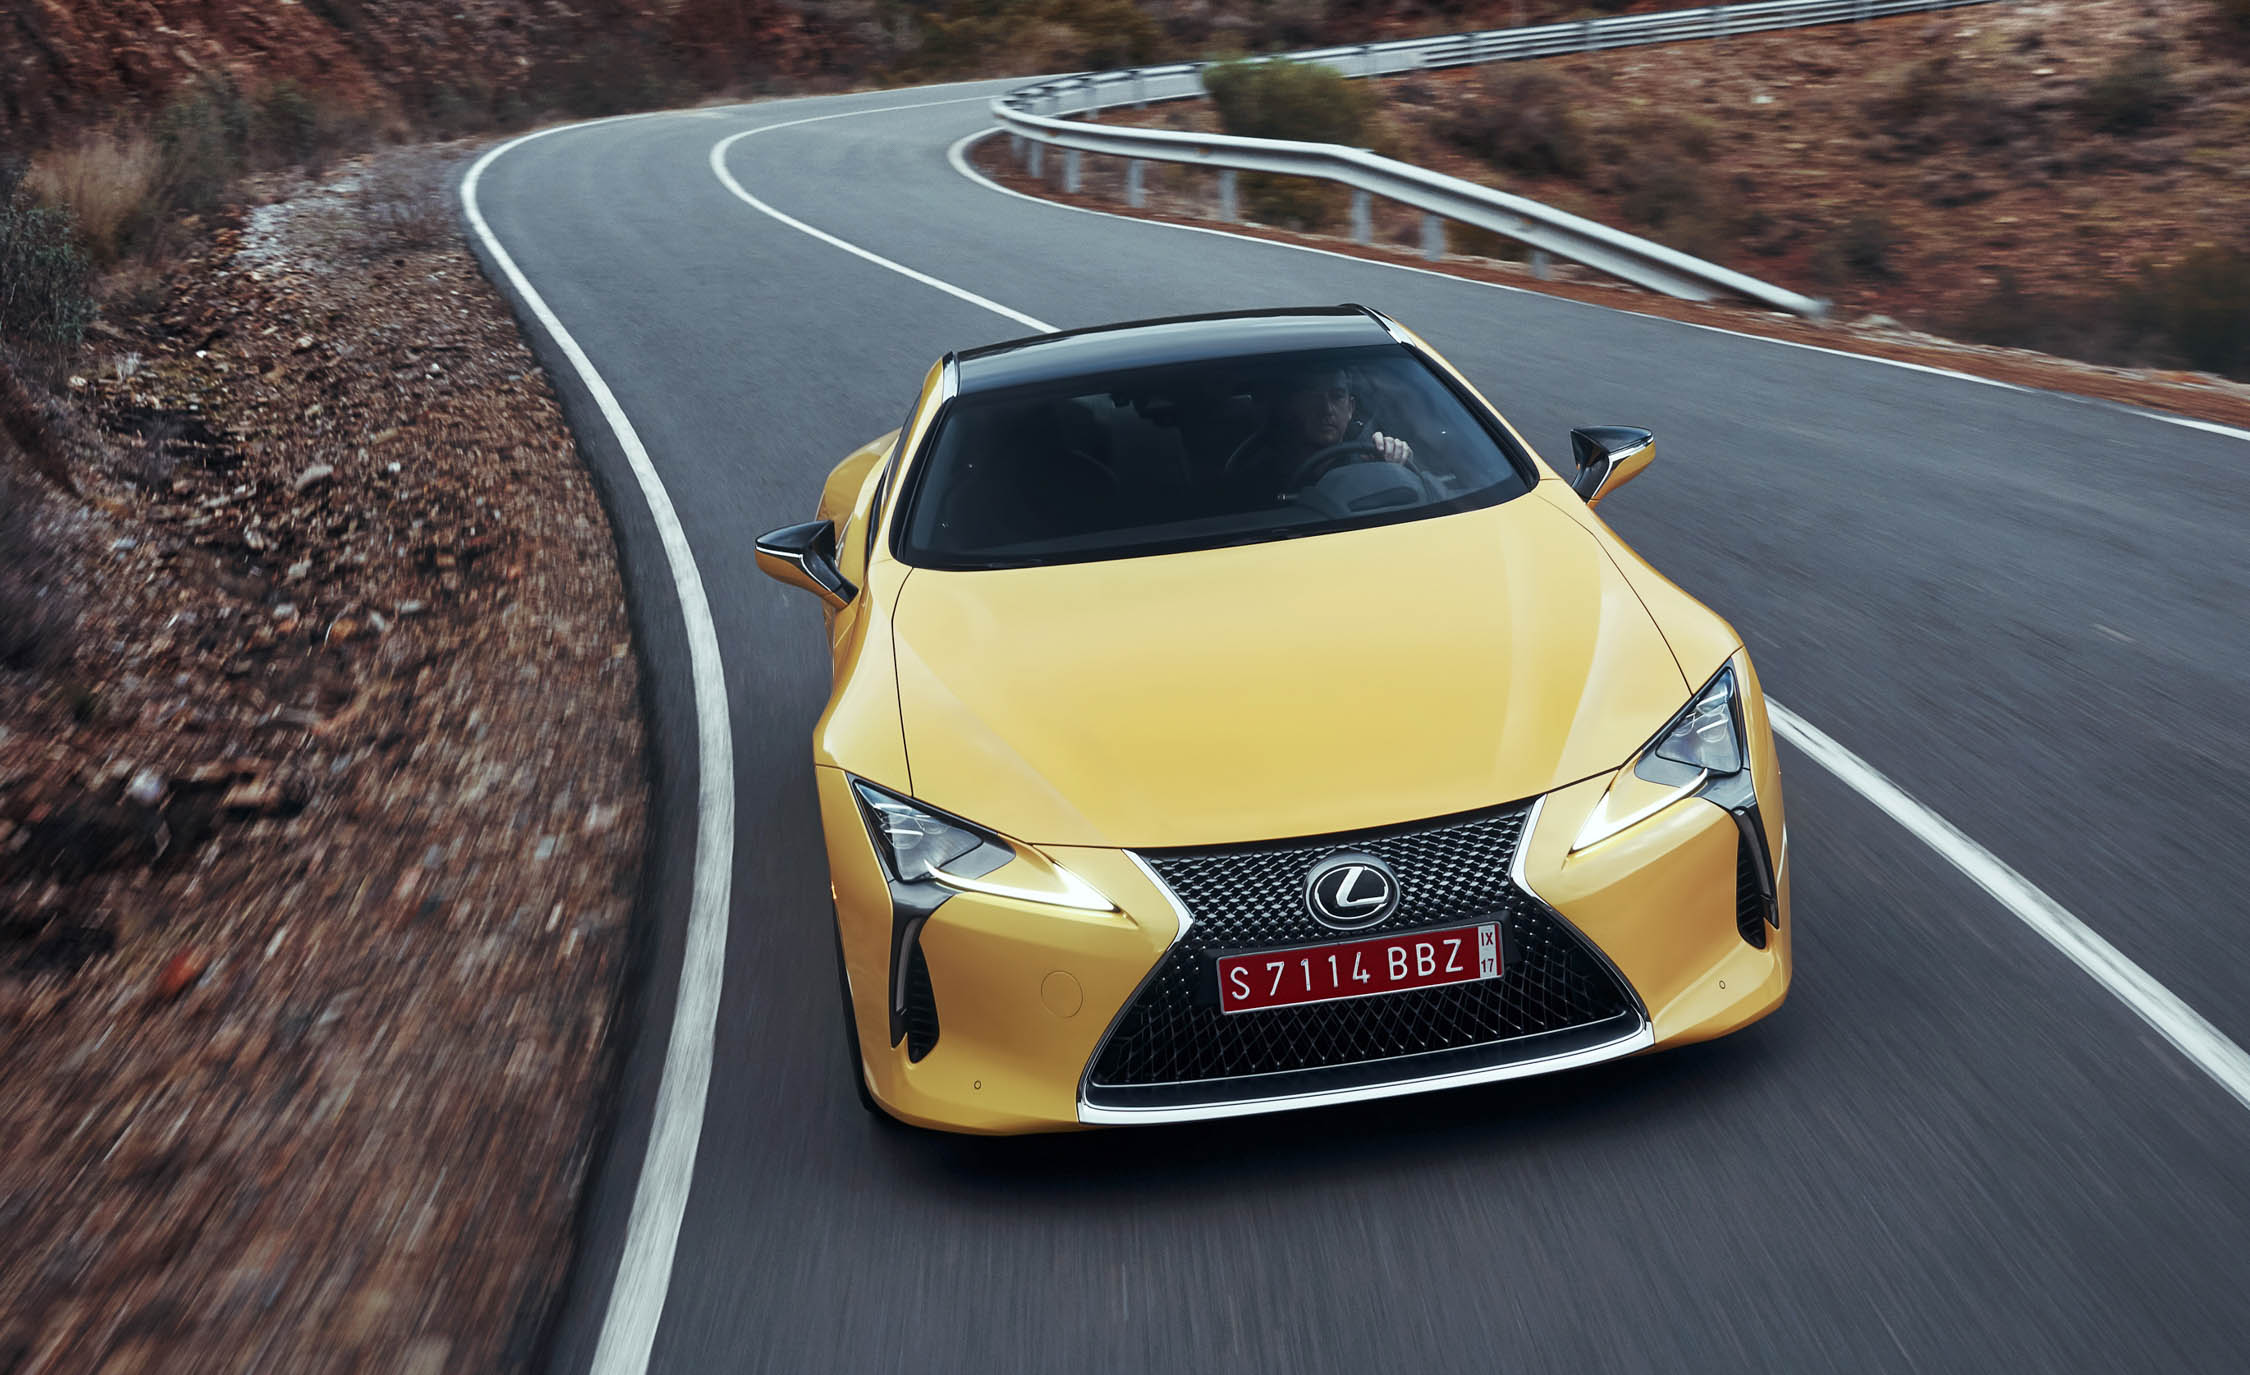 2018 Lexus Lc500 Yellow Test Drive Front View (Photo 75 of 84)